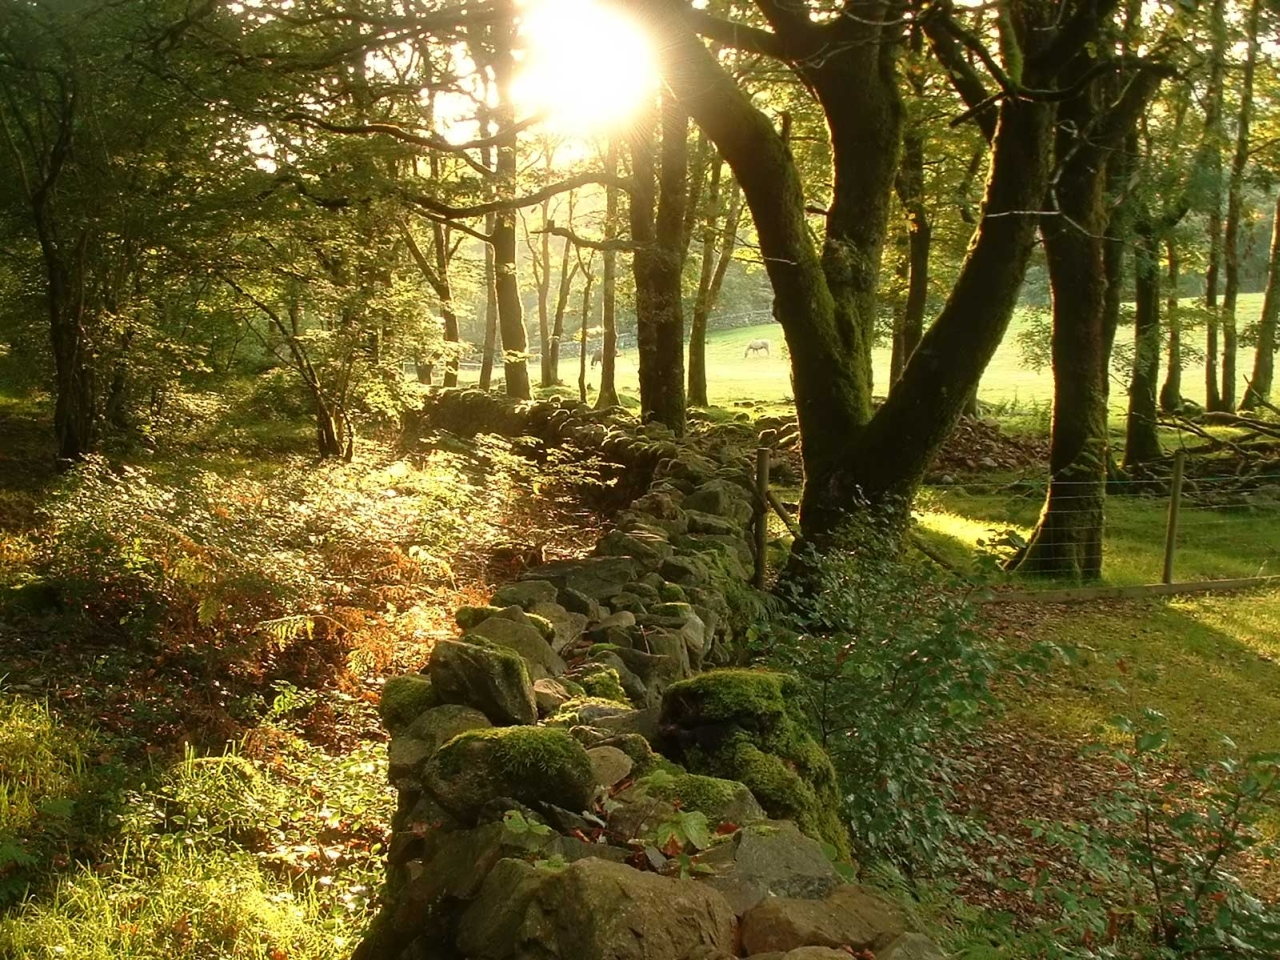 The stone fence in the forest